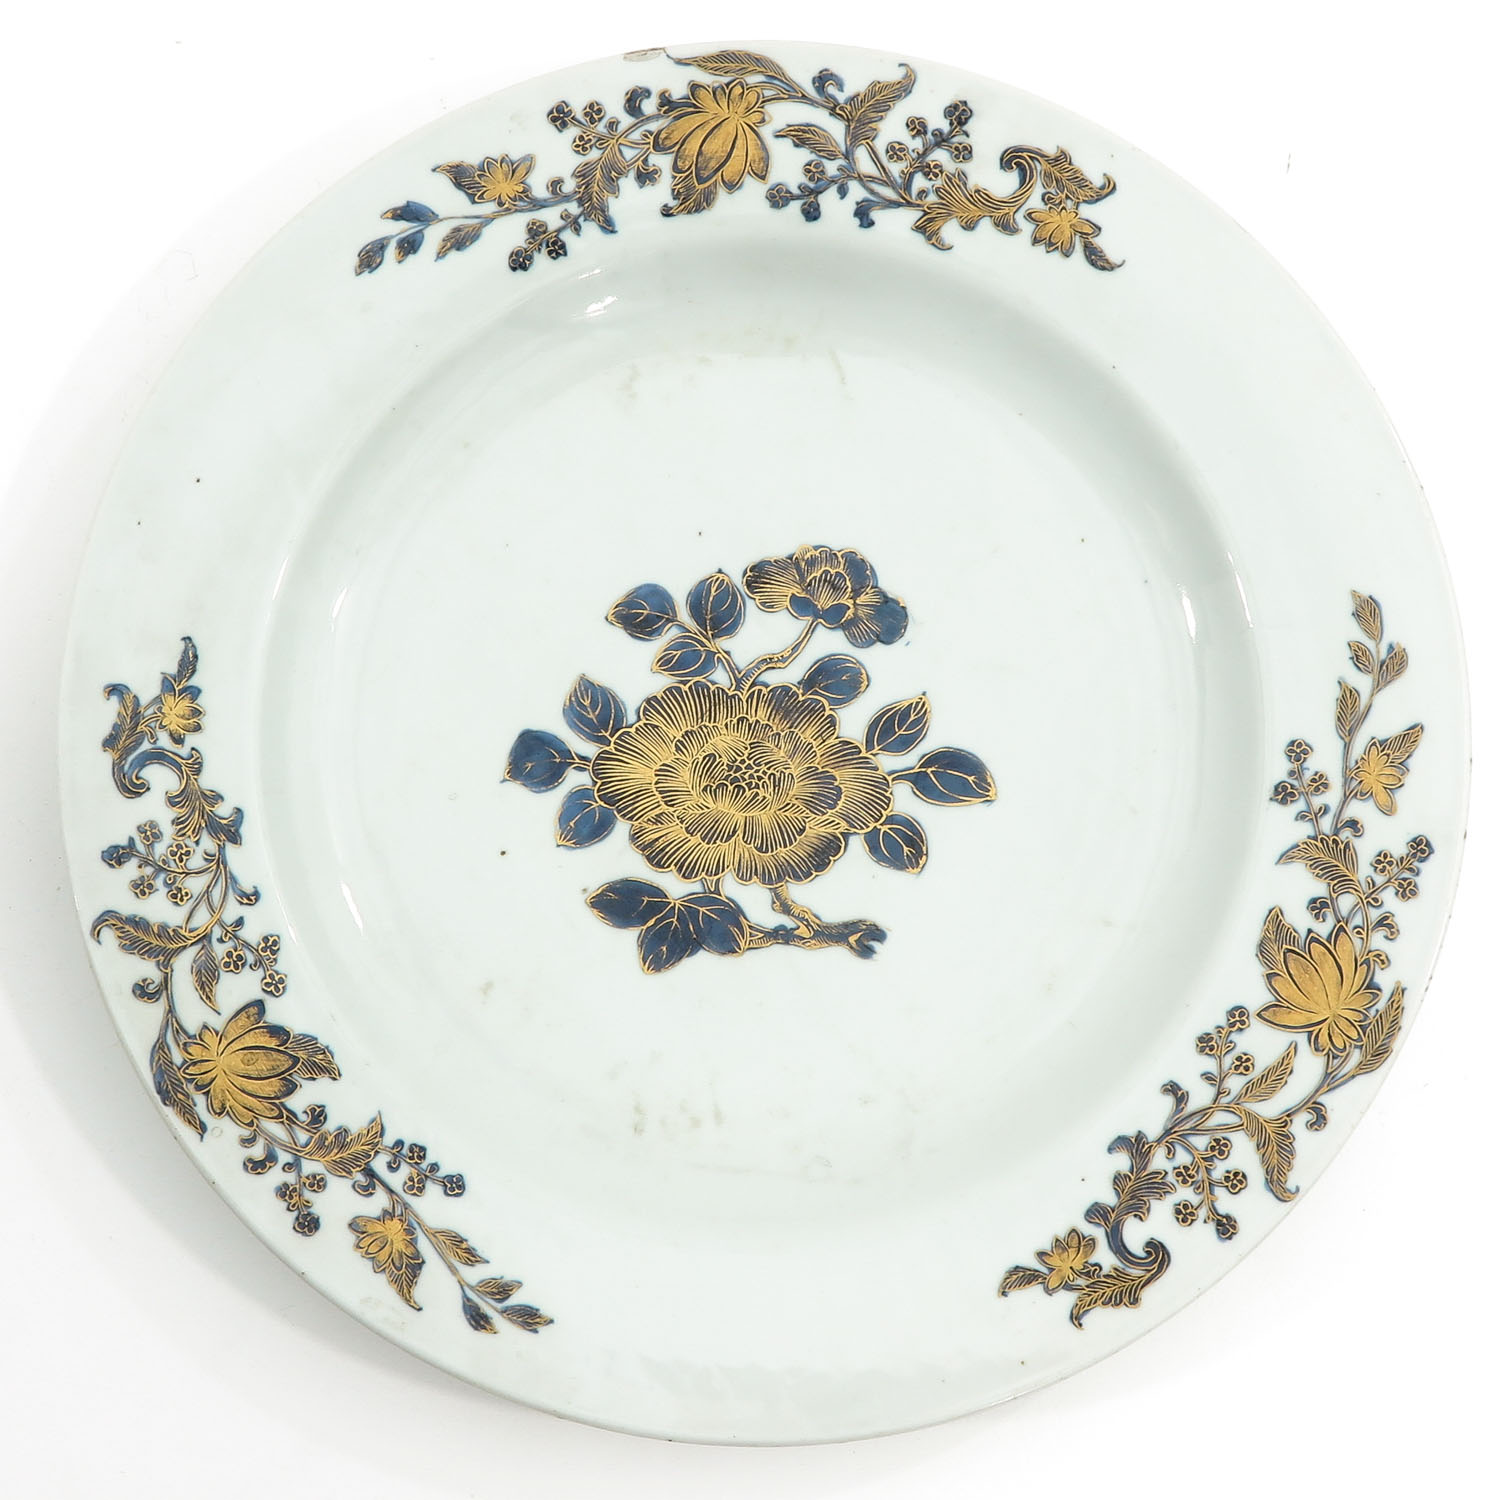 A Blue and Gilt Decor Charger